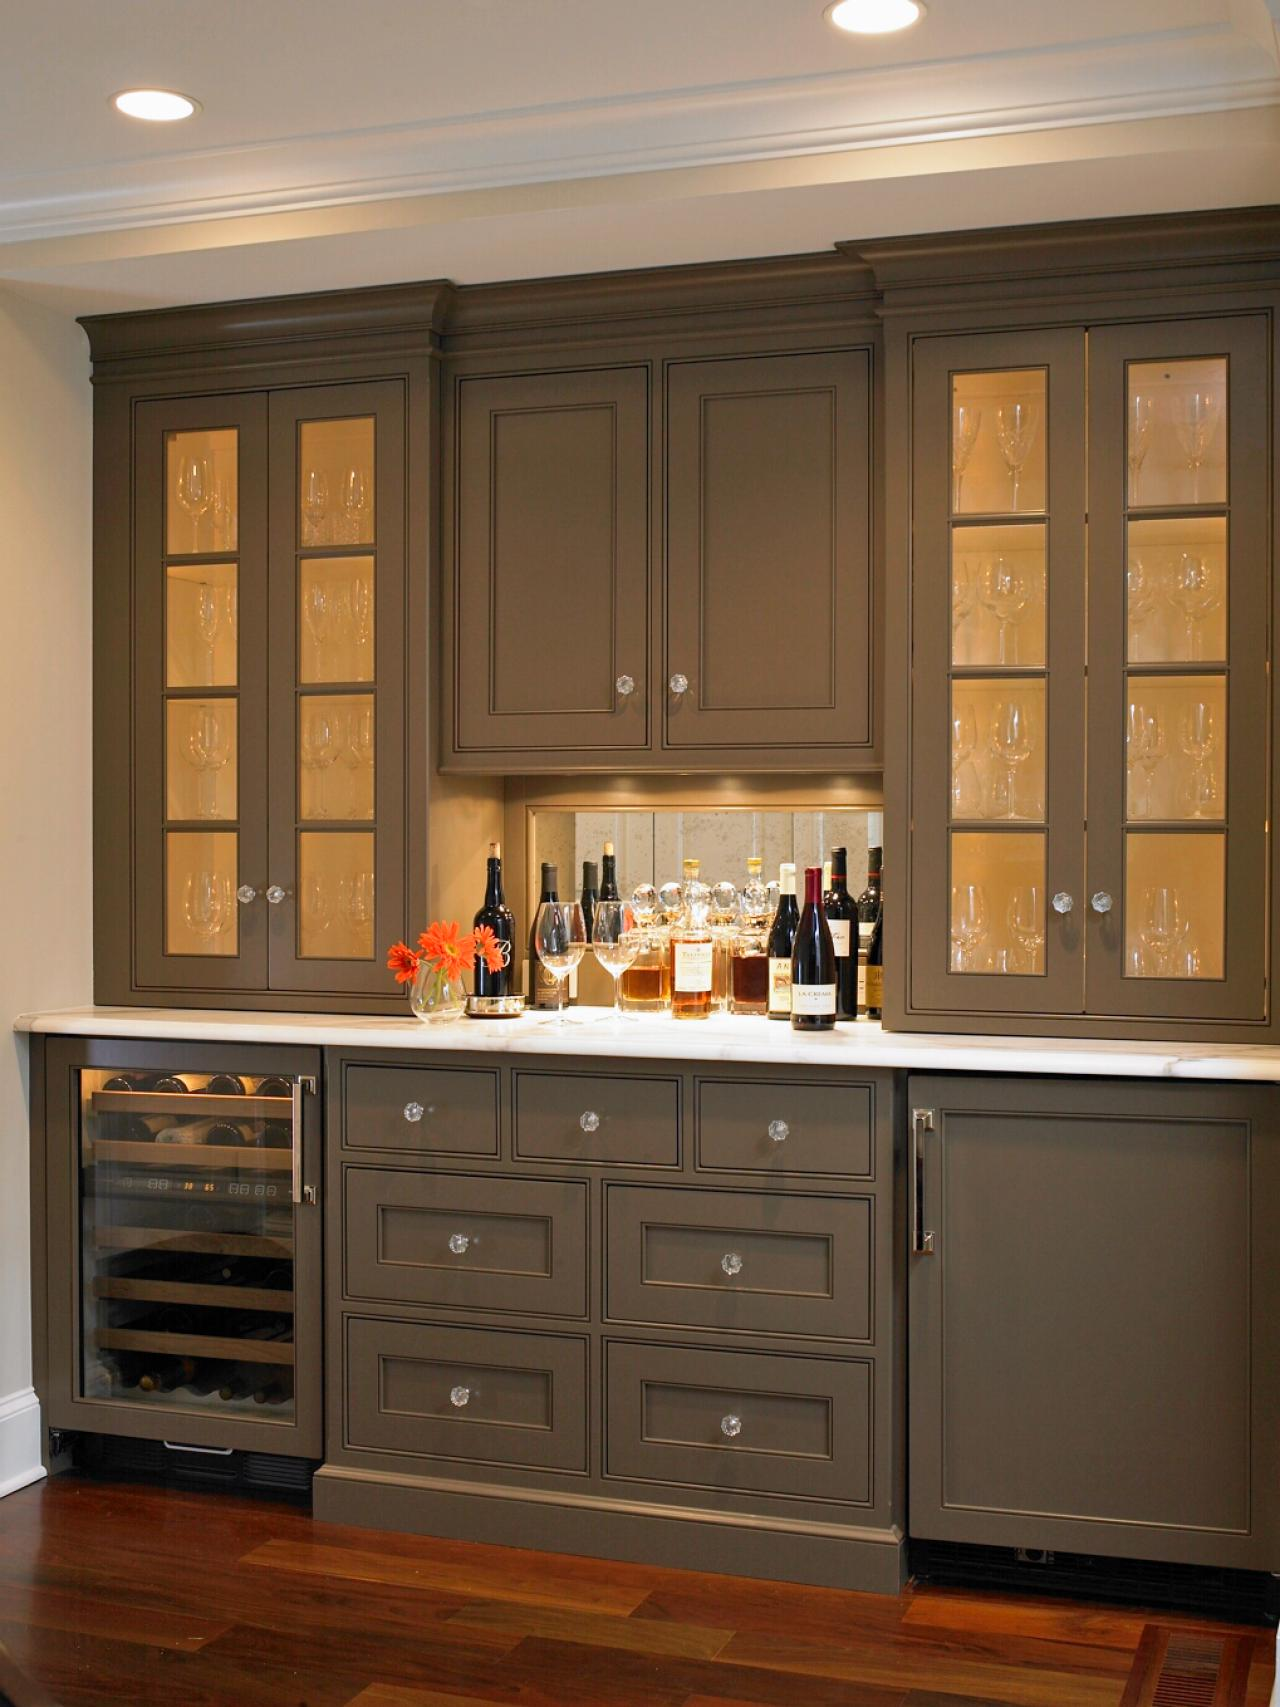 Color ideas for painting kitchen cabinets hgtv pictures kitchen ideas design with cabinets - Bar ideas for dining room ...